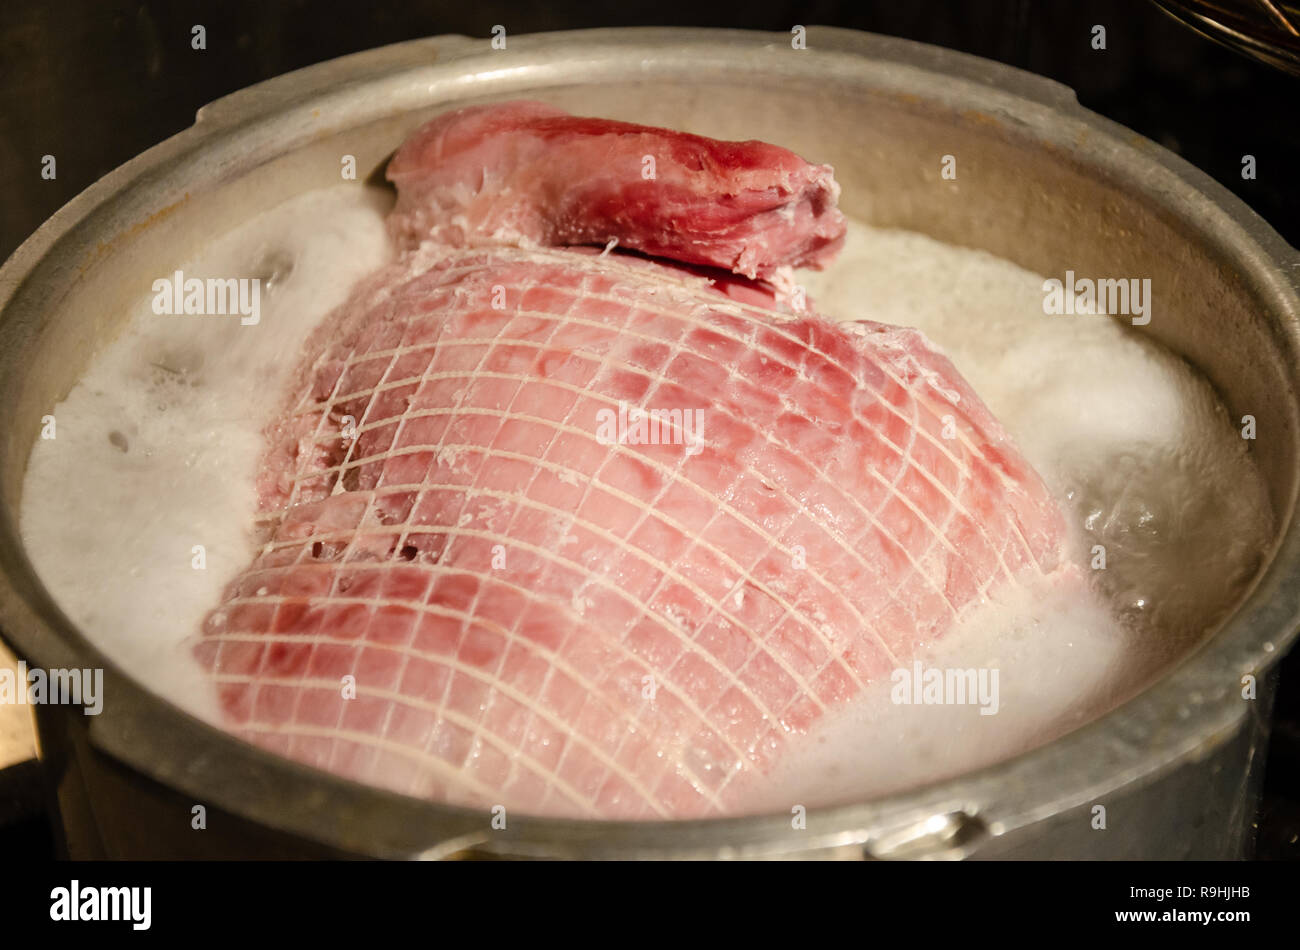 A joint of gammon boiling in a large pan on a hob. - Stock Image